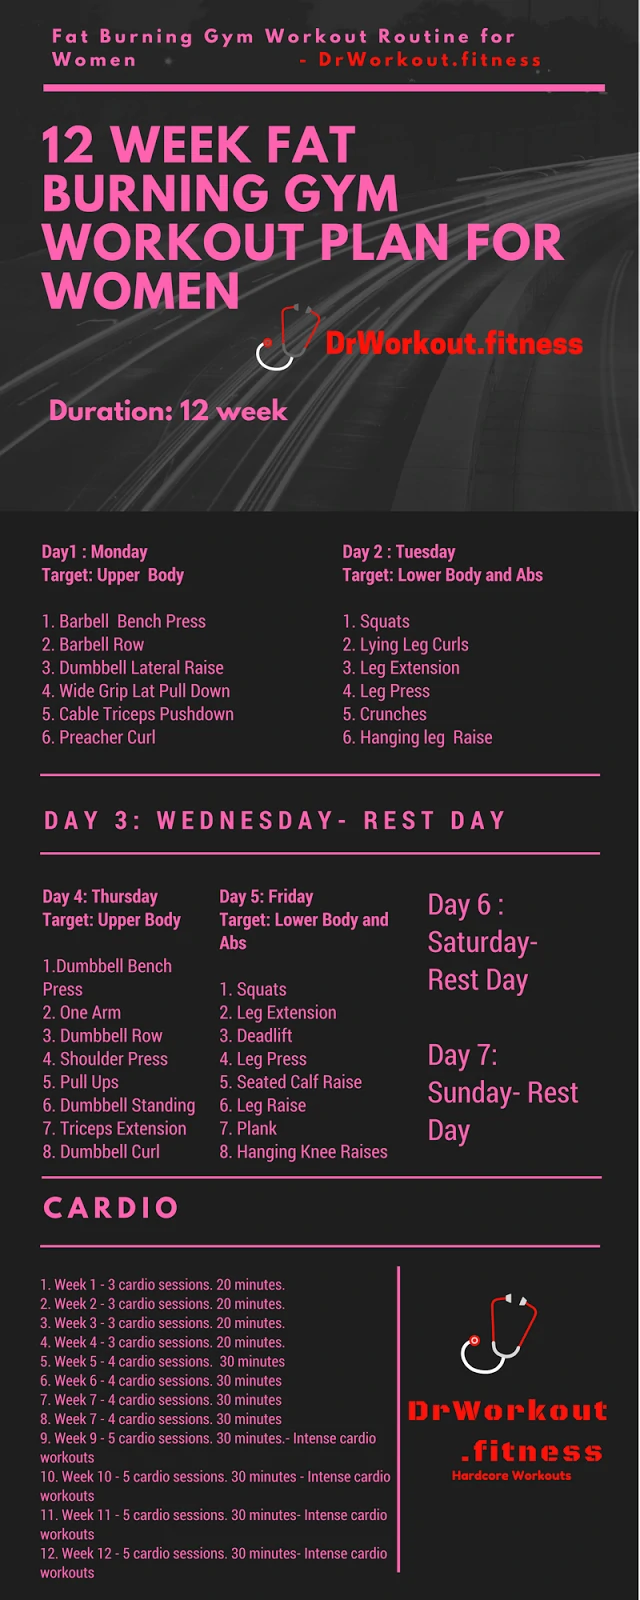 Photo of 12 Week Fat Burning Gym Workout Plan for Women